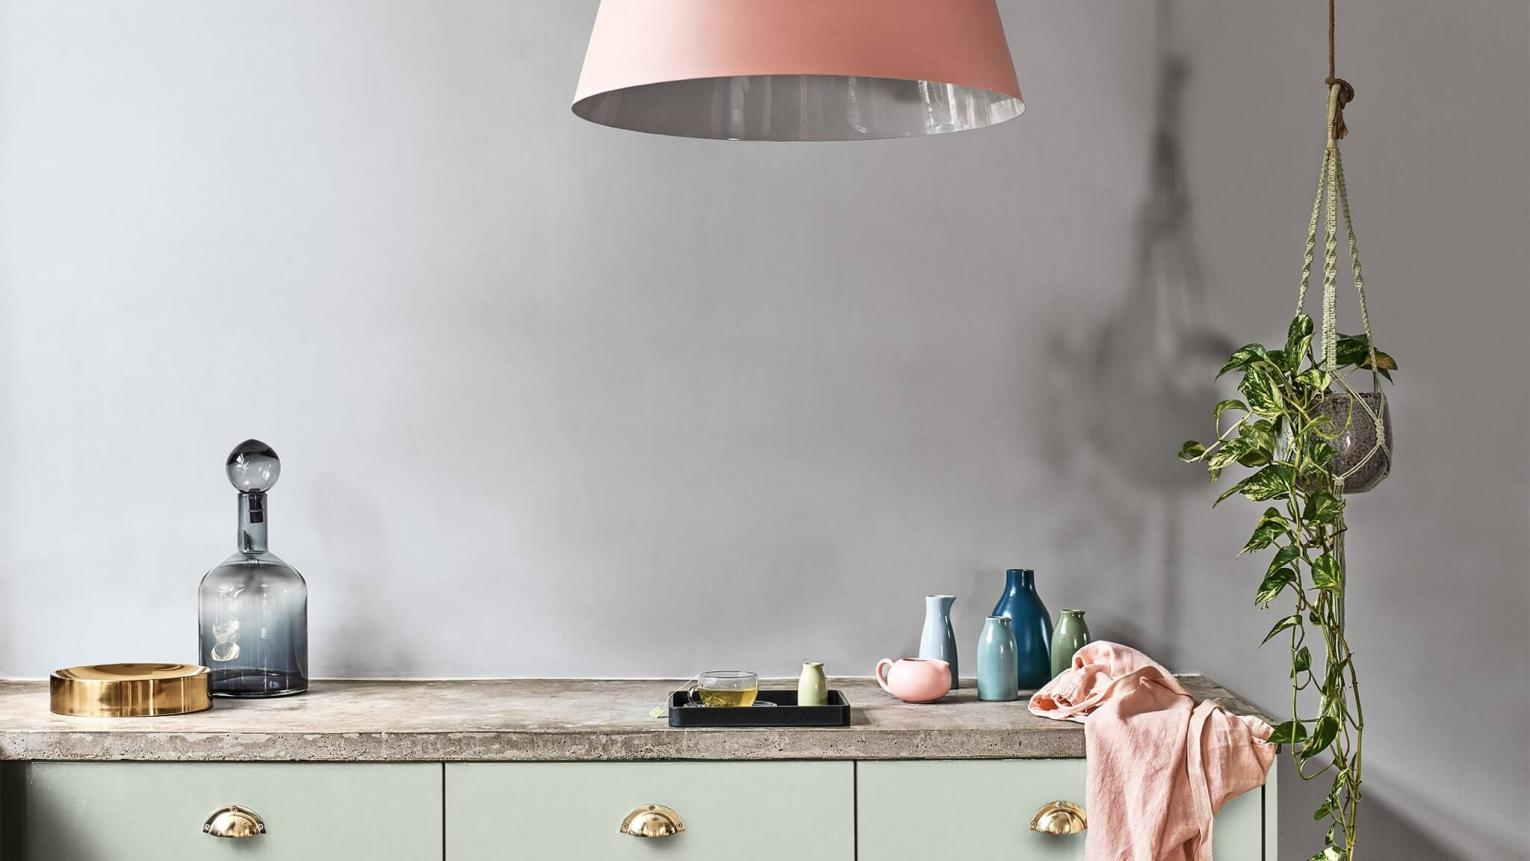 dulux-colour-futures-colour-of-the-year-2020-a-home-for-care-kitchen-inspiration-south-africa-6.jpg.jpg